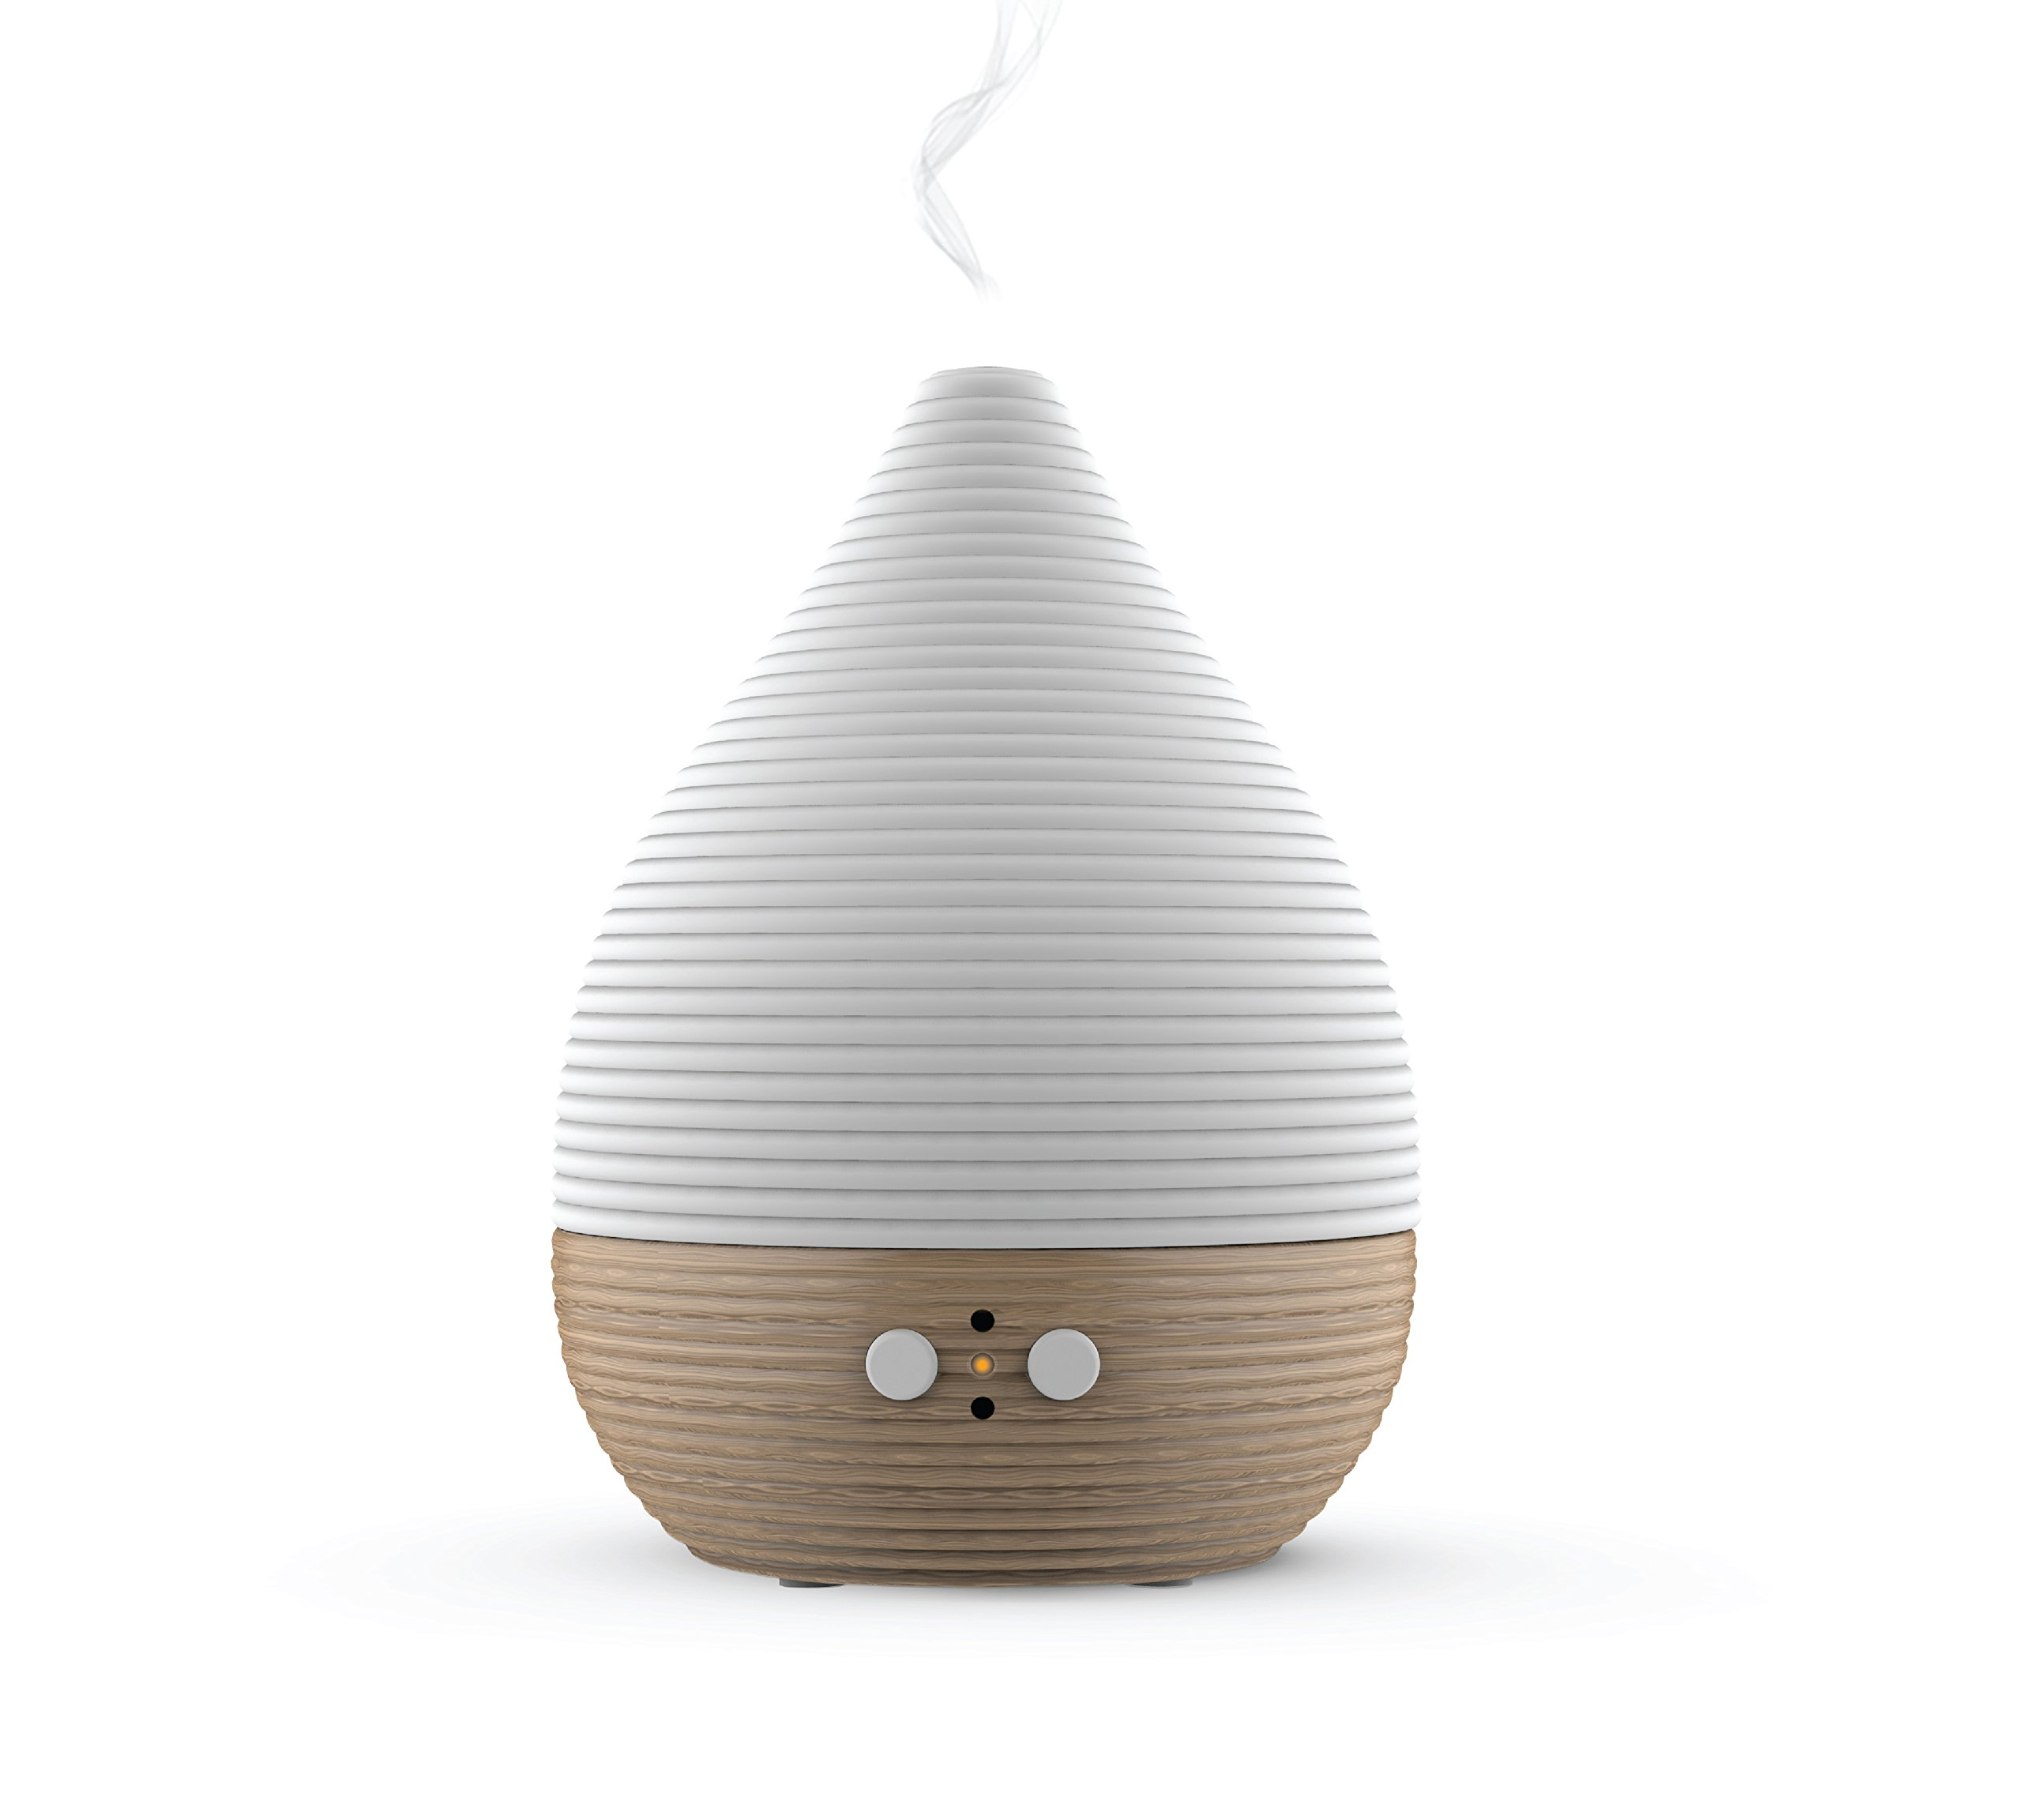 Amazon.com: Exquisite Nebulizing Essential Oil Diffuser